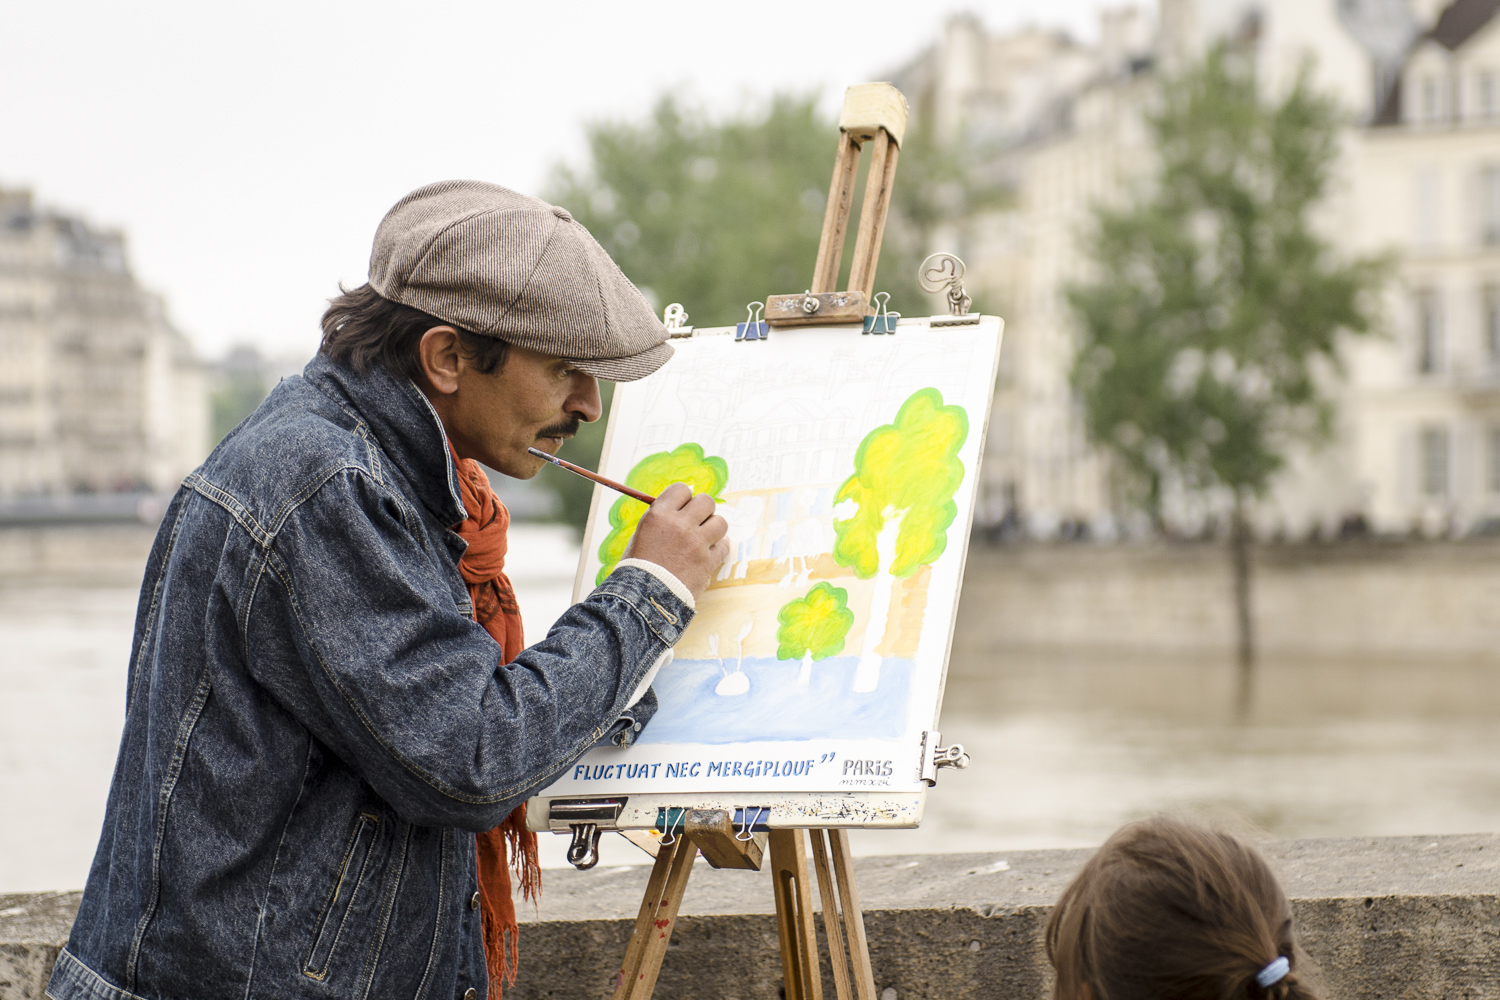 """Artist David Manuel Garcia plays with the Paris city motto """"Fluctuat Nec Mergitur"""" which means """"Tossed but not sunk"""" in Latin, but changes it to add the french expression """"gloup"""" similar to """"plop"""" in English, to make """"Fluctuat Nec Mergigloup""""   Photo : Alexander J.E. Bradley"""